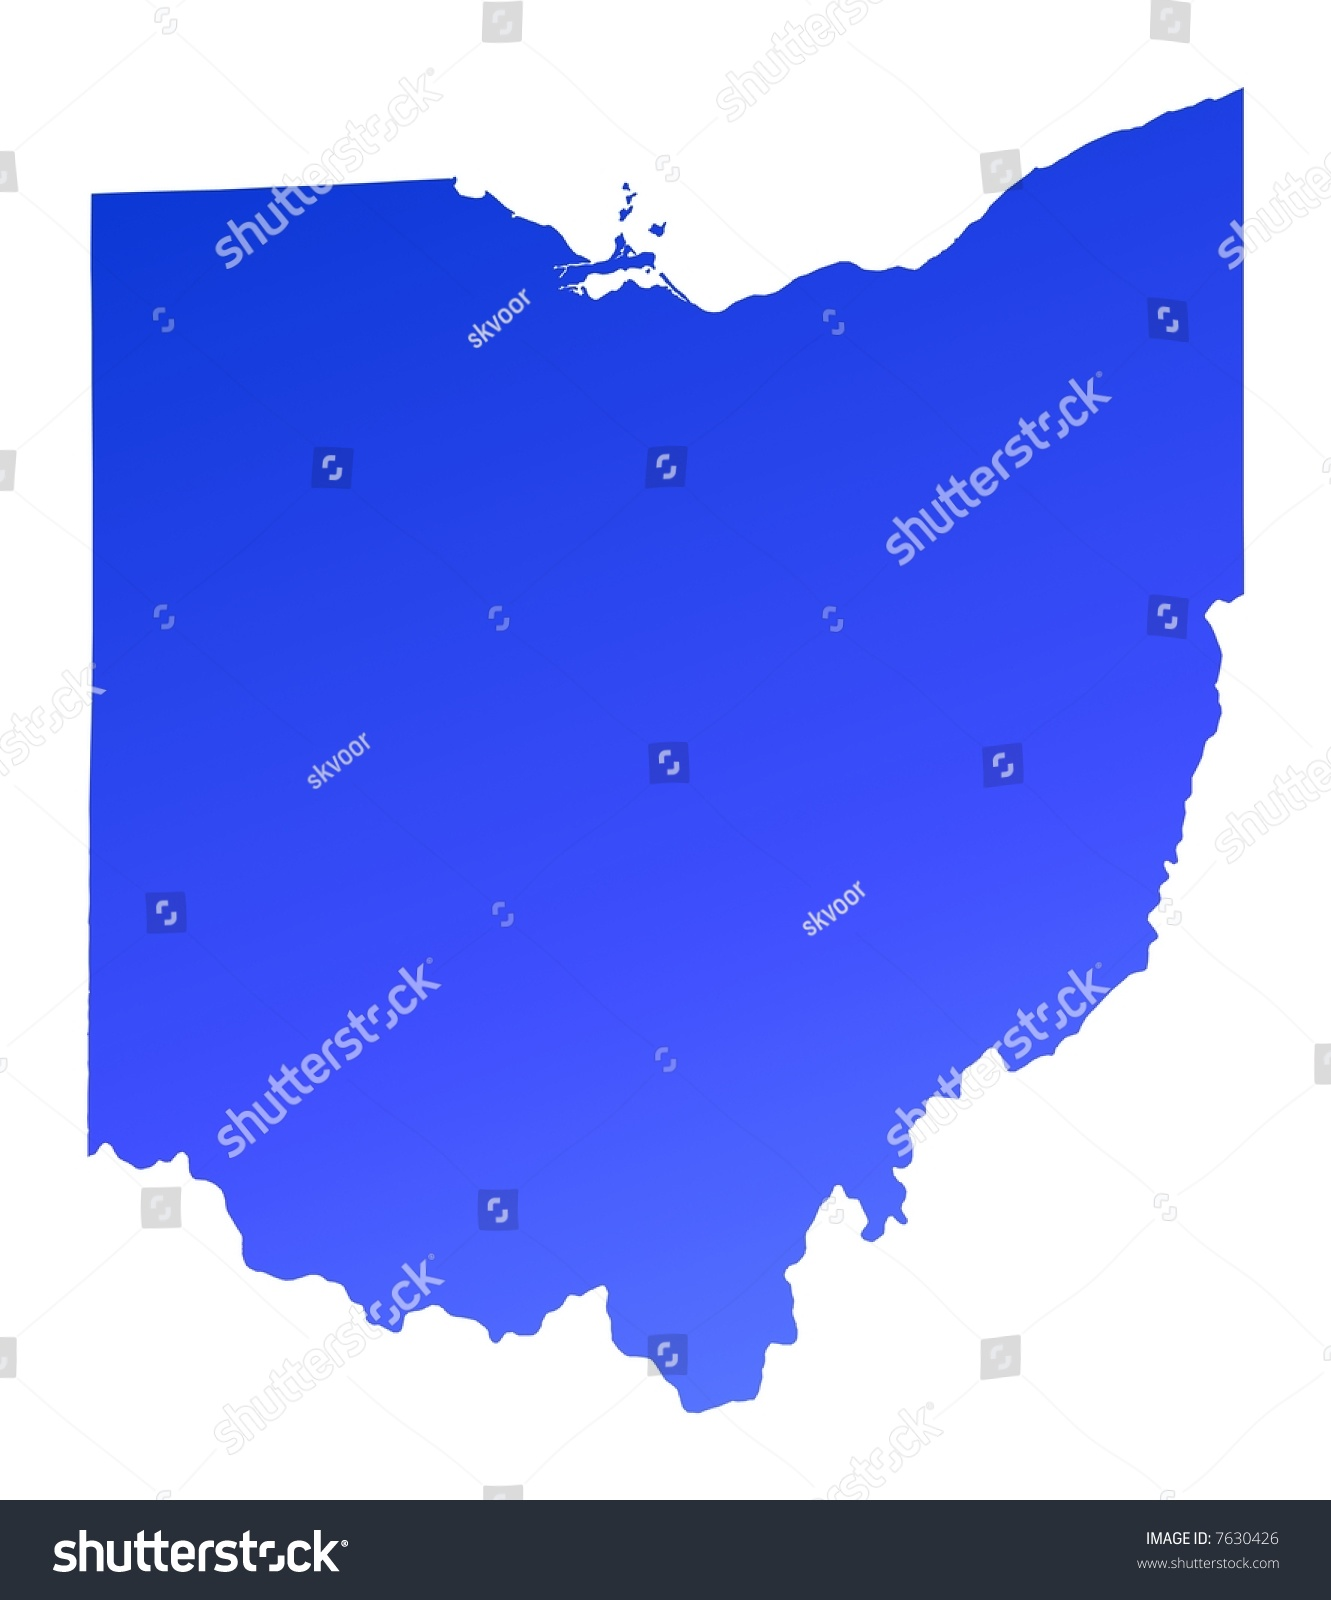 Blue Gradient Ohio Map Usa Detailed Stock Illustration - Ohio on the map of usa